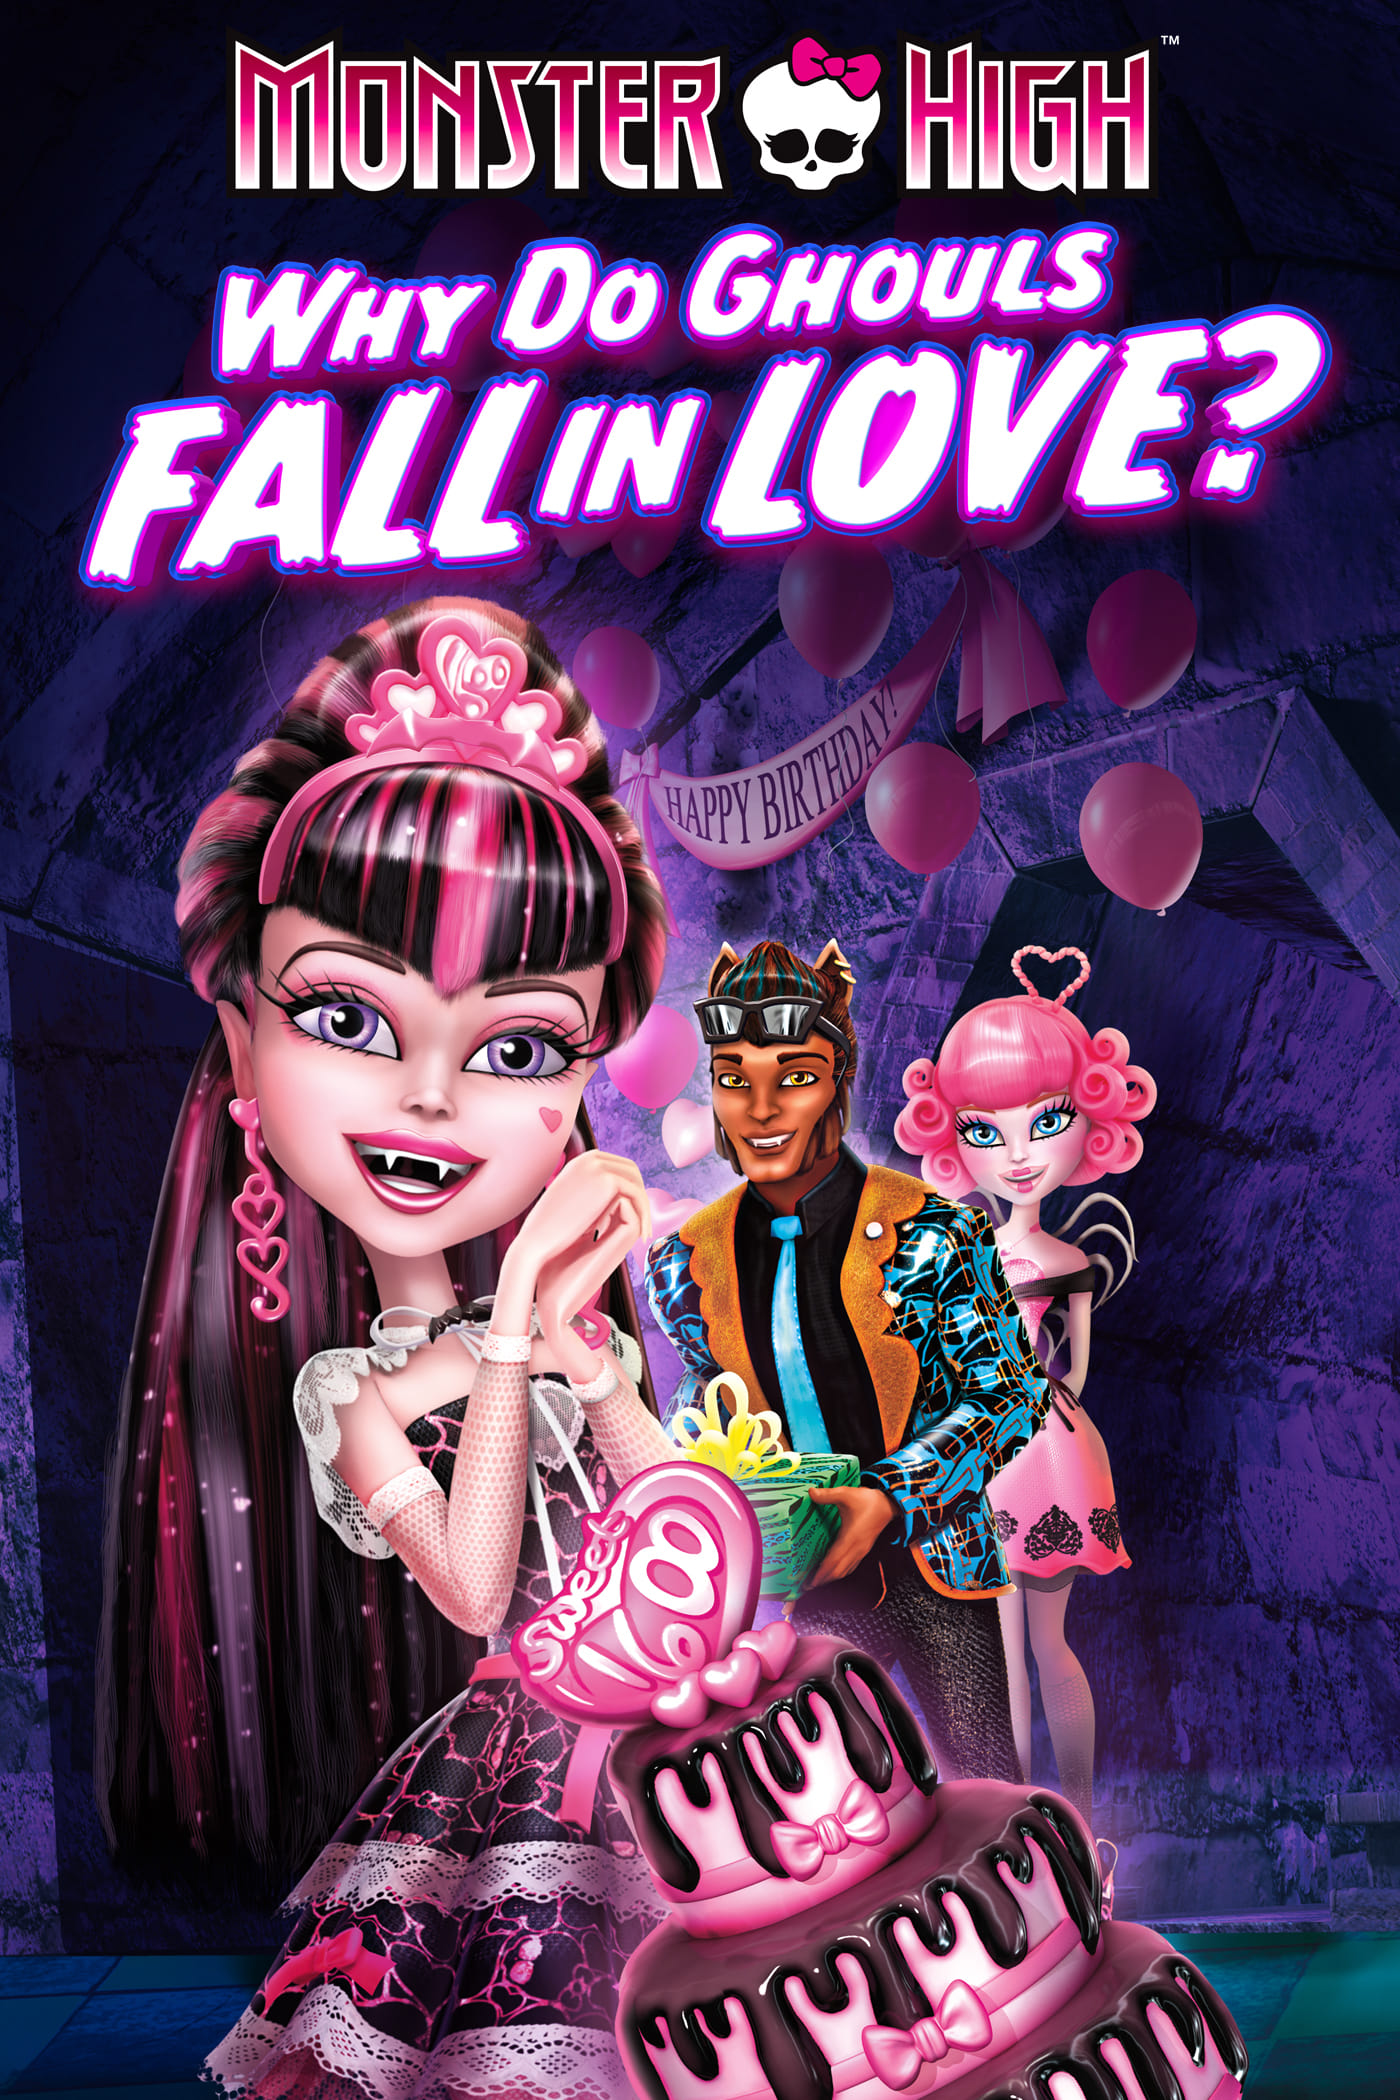 Monster High: Why Do Ghouls Fall in Love? (2011)